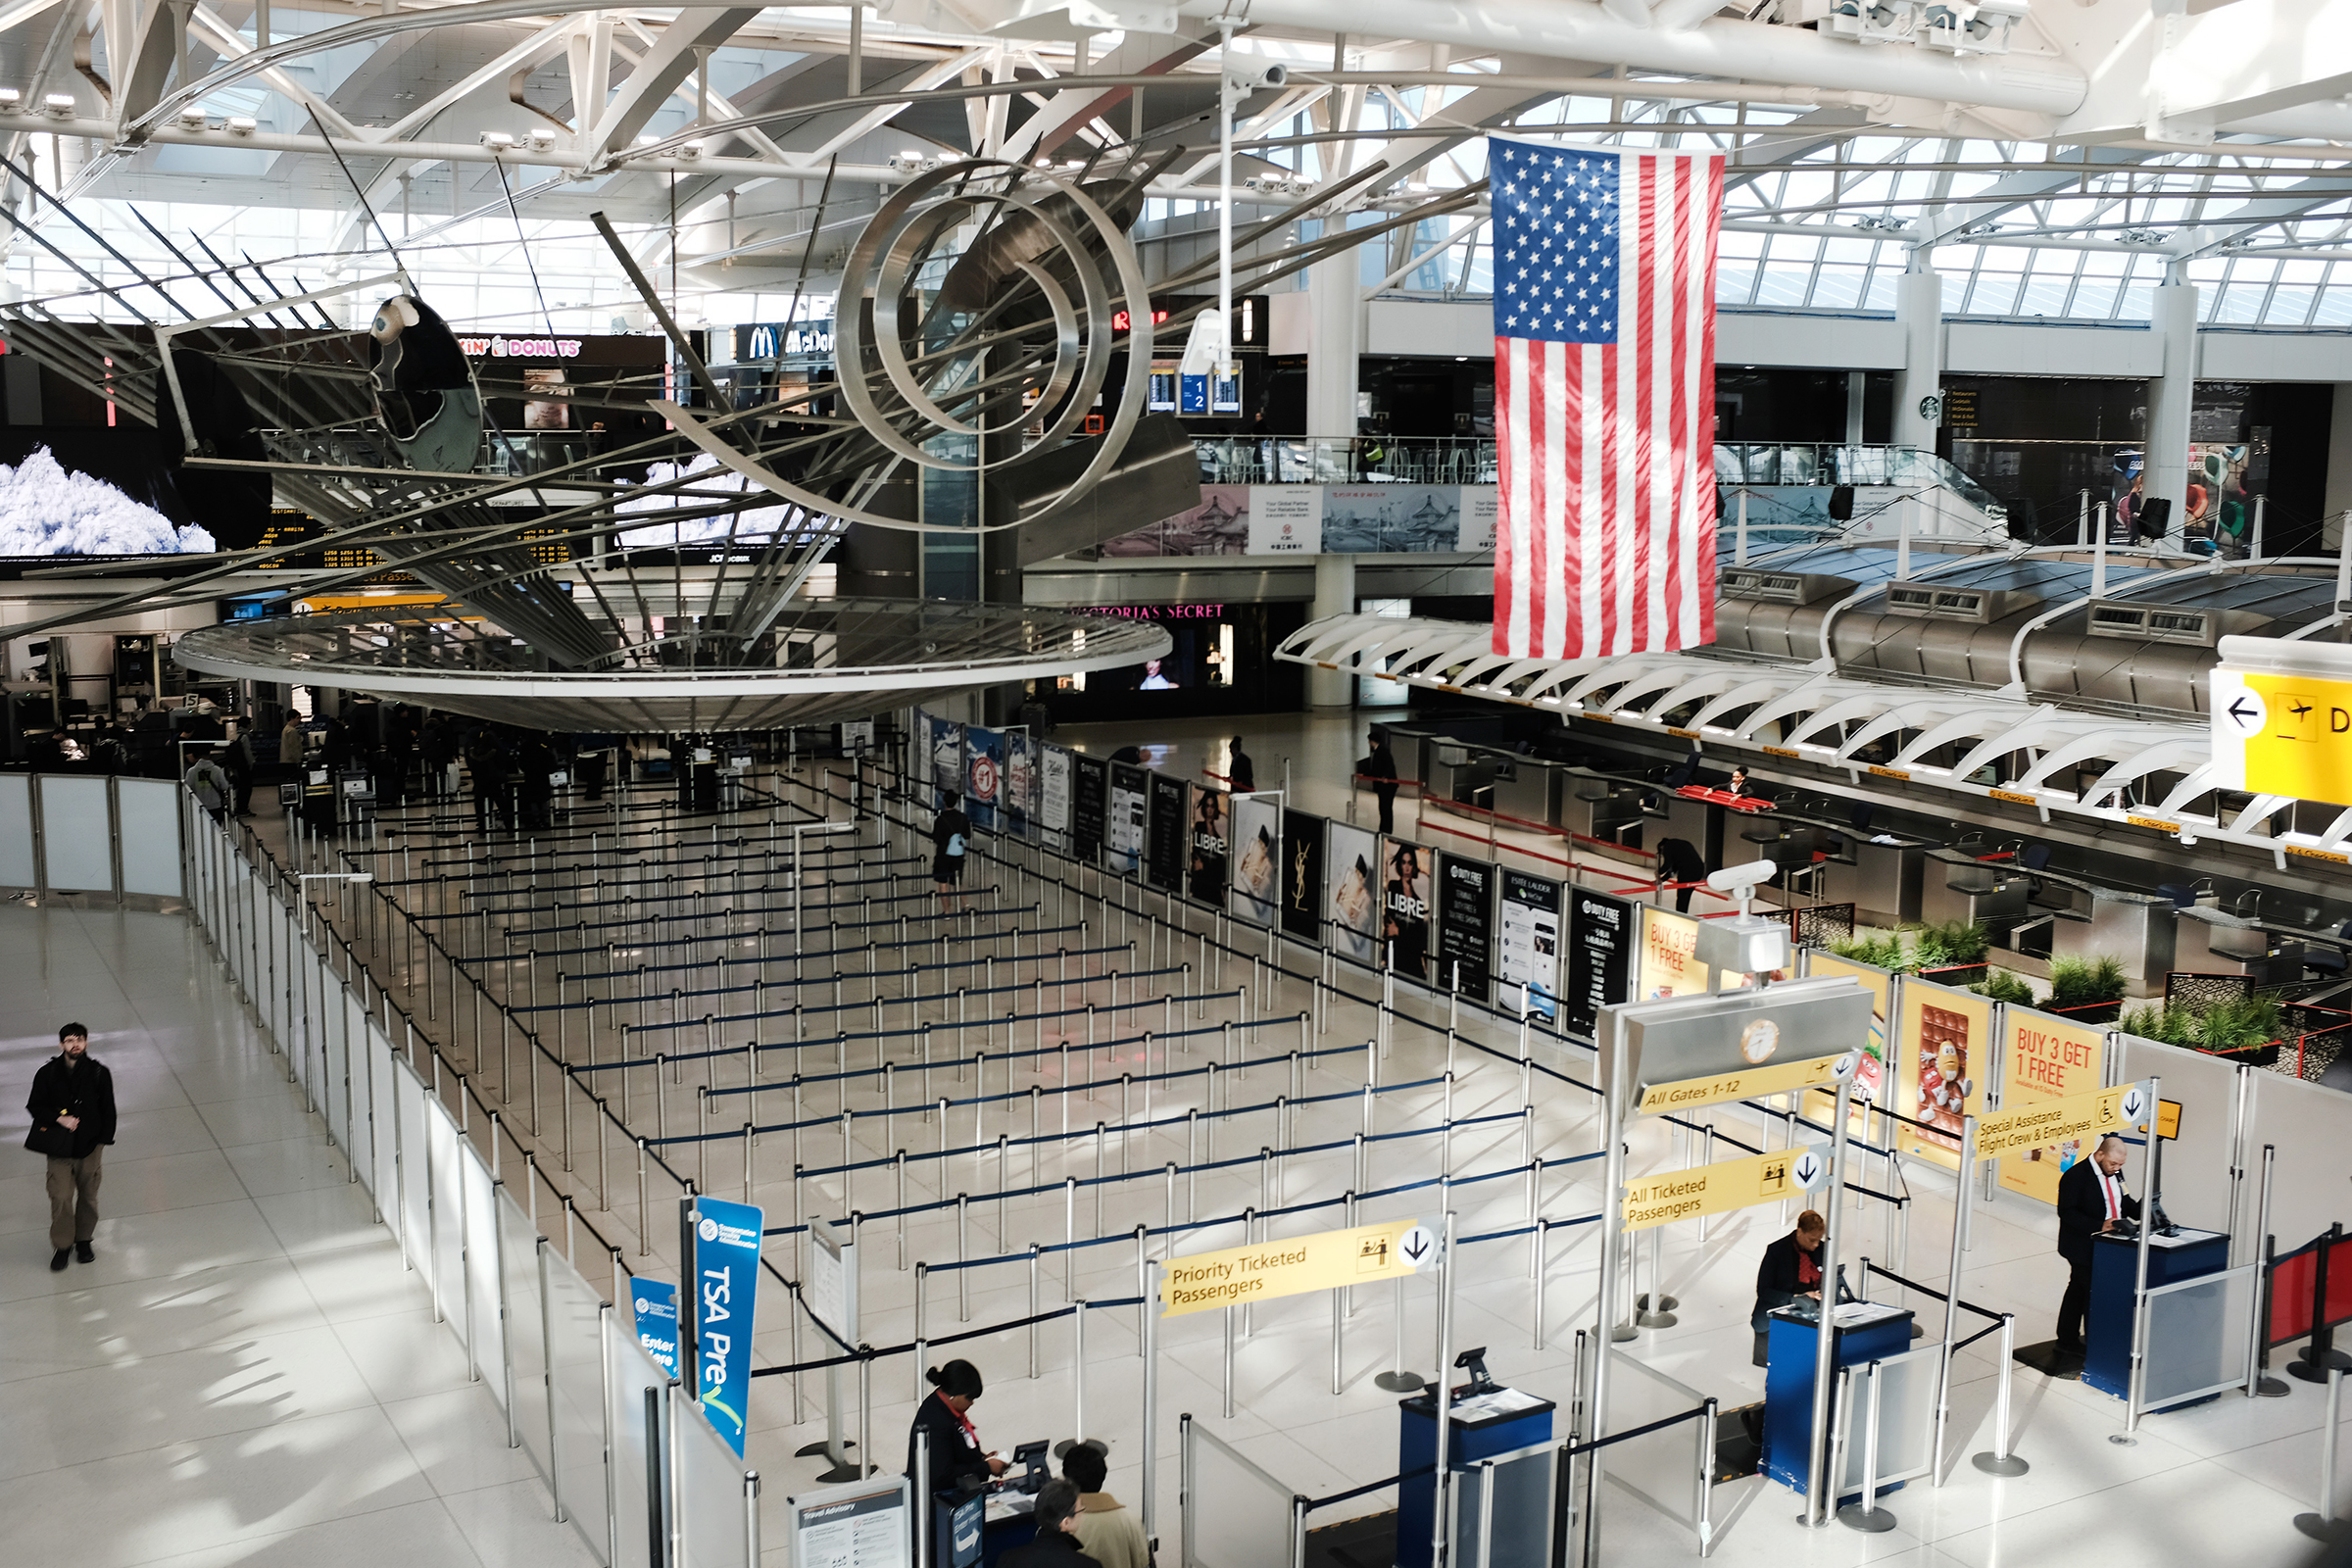 A sparse international departures terminal at John F. Kennedy International Airport in New York City on March 7. Days later, as concerns over the coronavirus grew, President Trump announced restrictions on travelers from Europe.